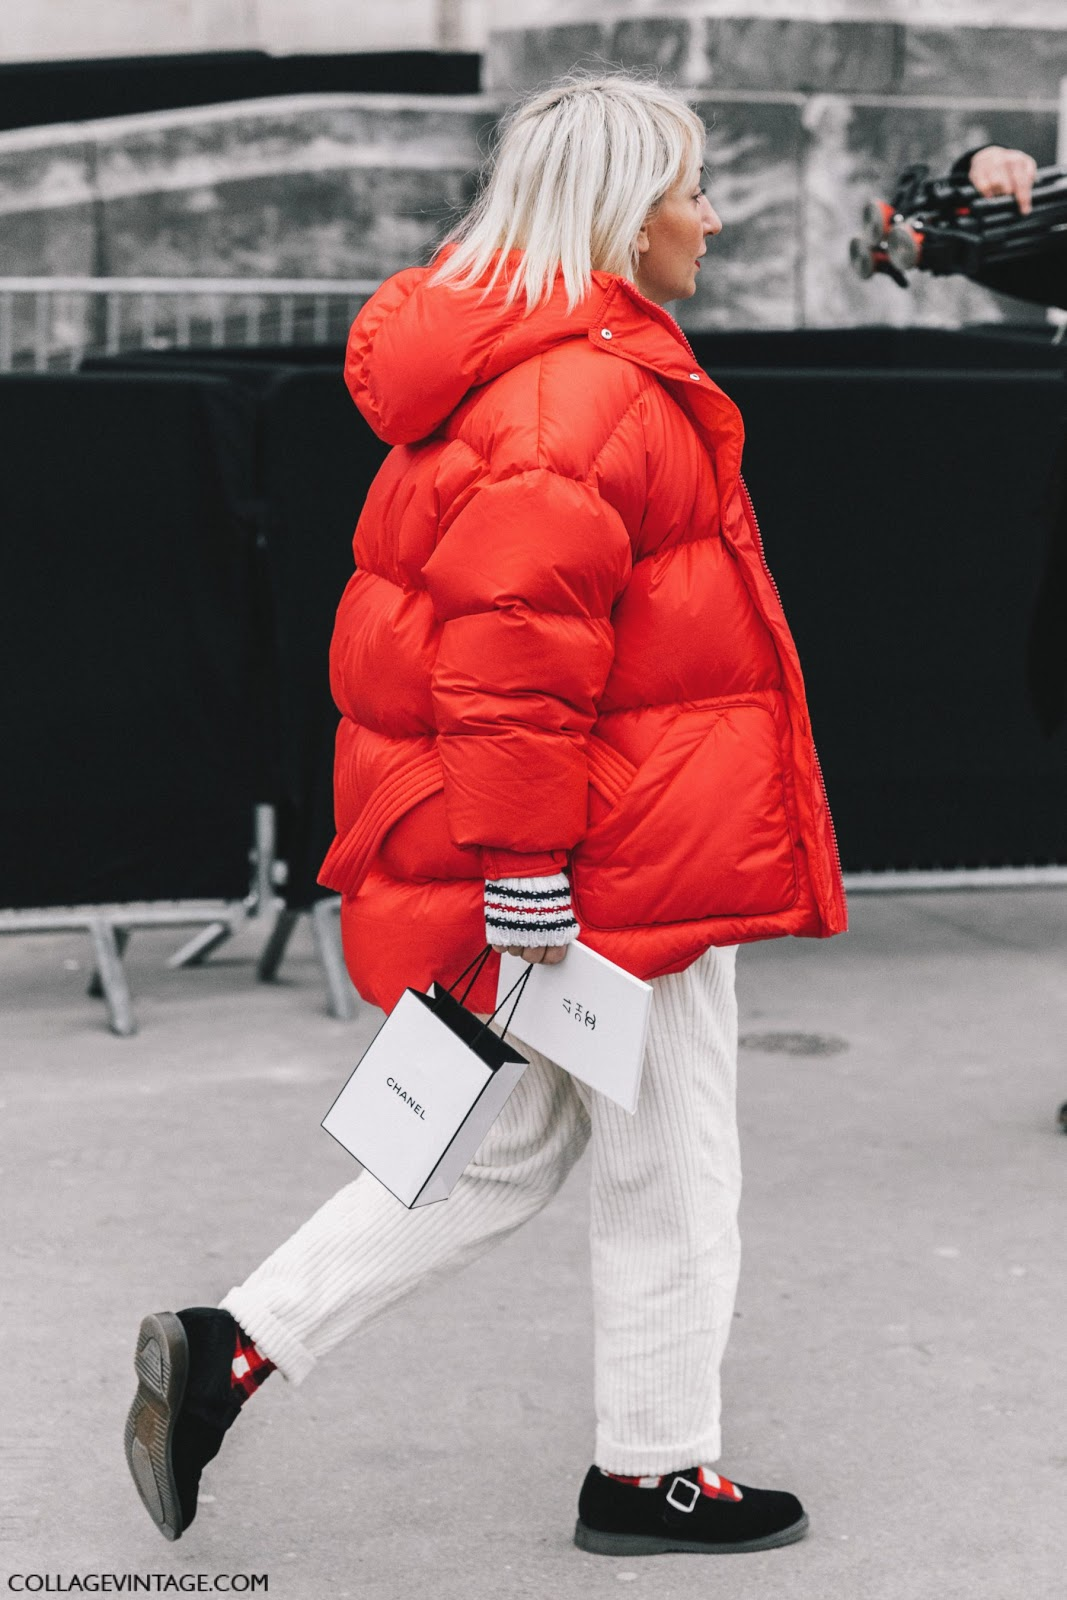 Couture_Paris_Fashion_Week-PFW-Street_Style-Chanel-Vetements-Outfit-Cool_Chic_Style_Fashion